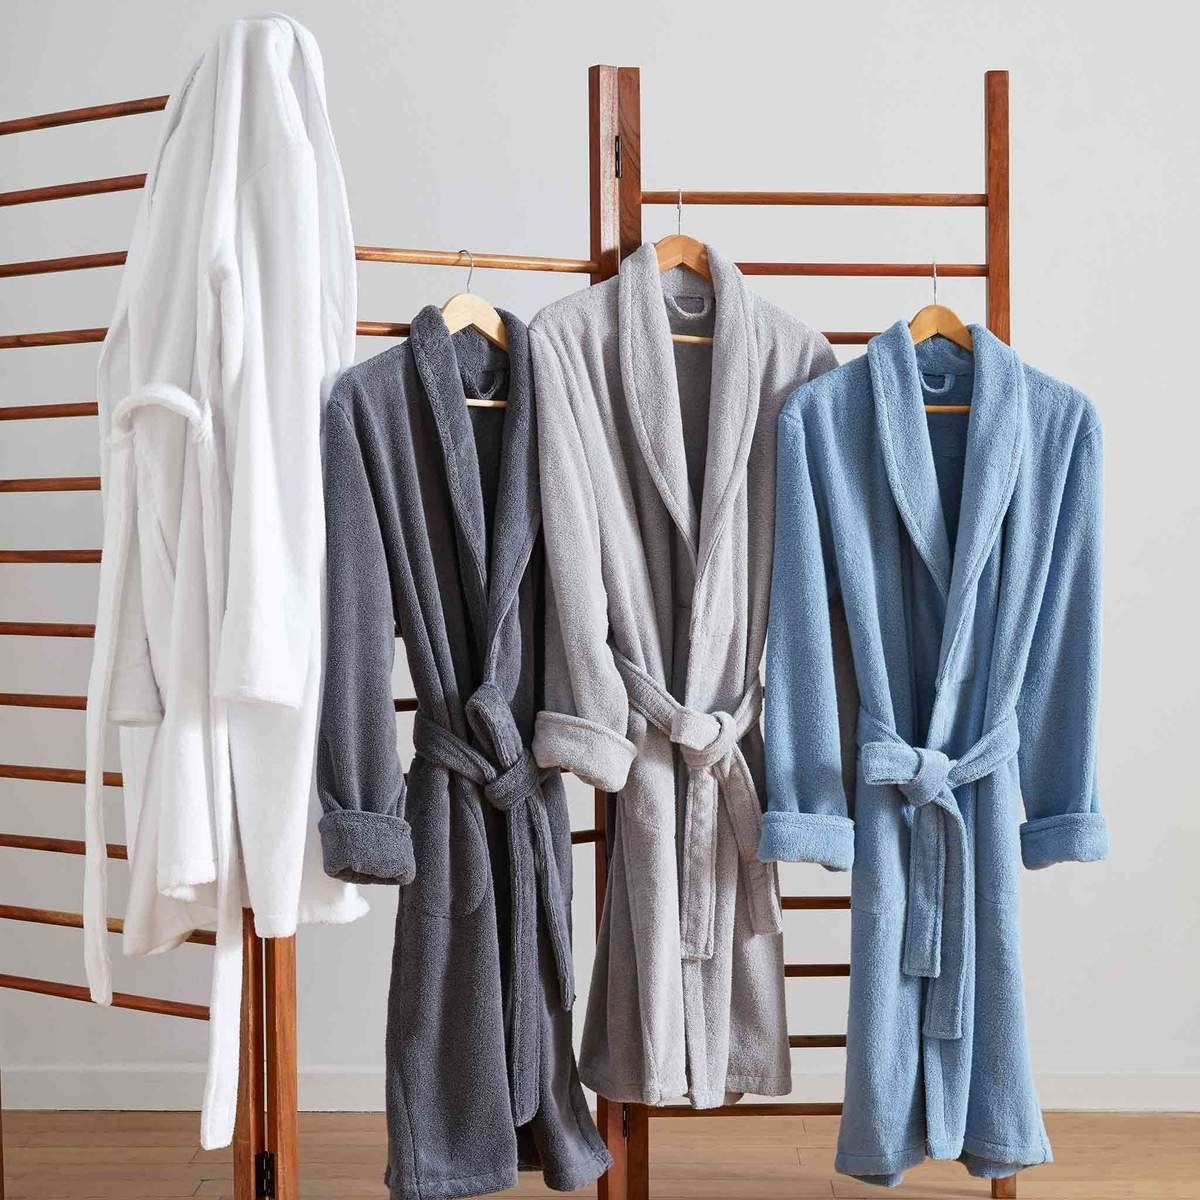 four robes in white, grey, slate, and blue